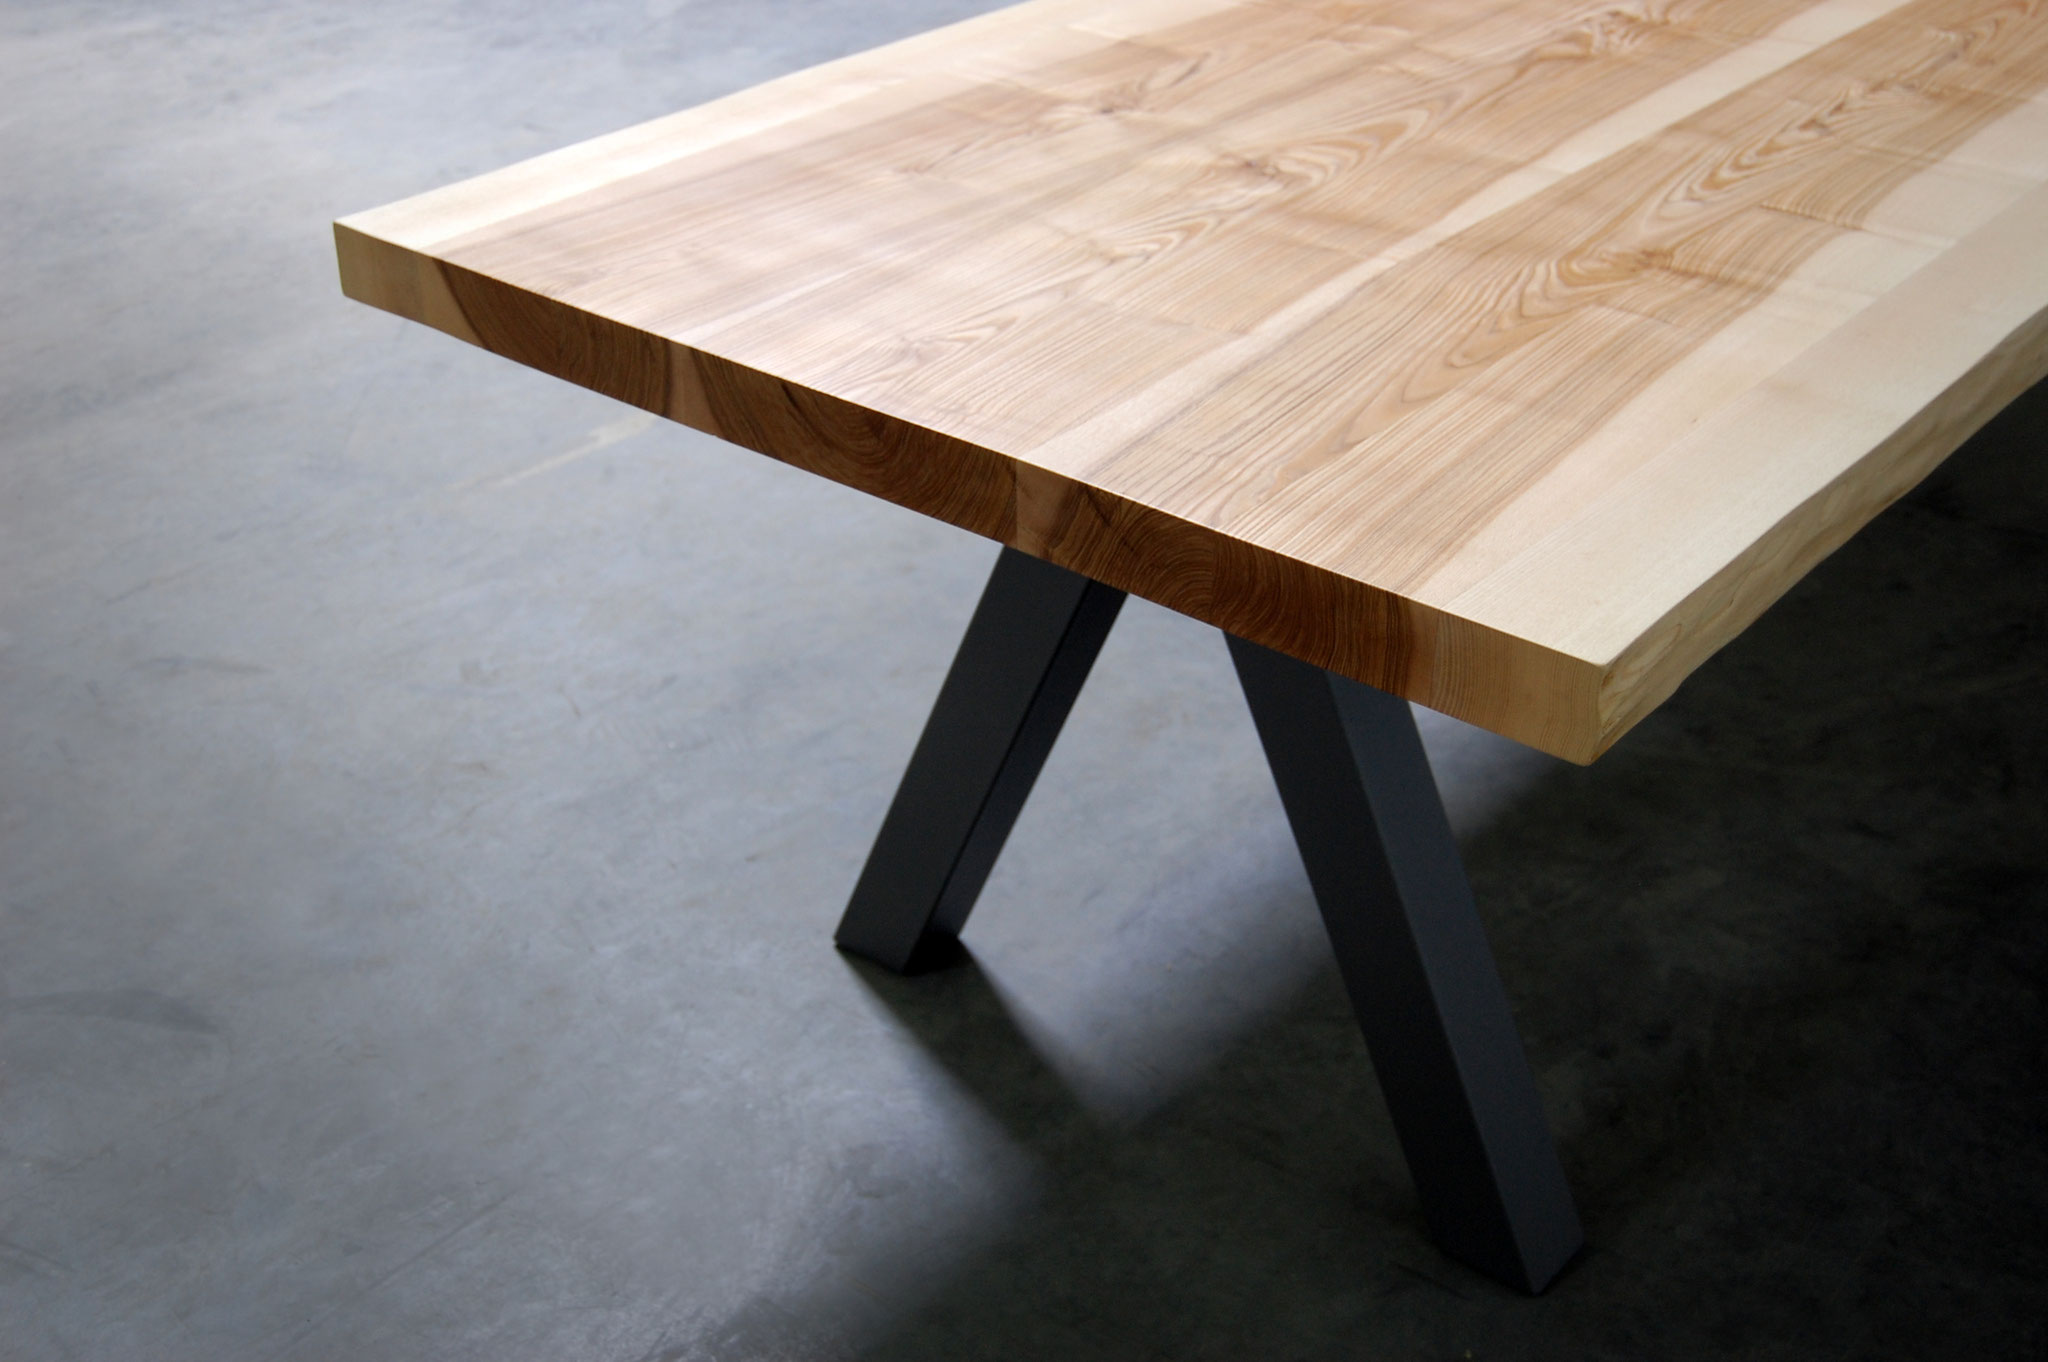 Table artisanale fabriqu e en france artmeta mobilier - Table de sciage maison ...